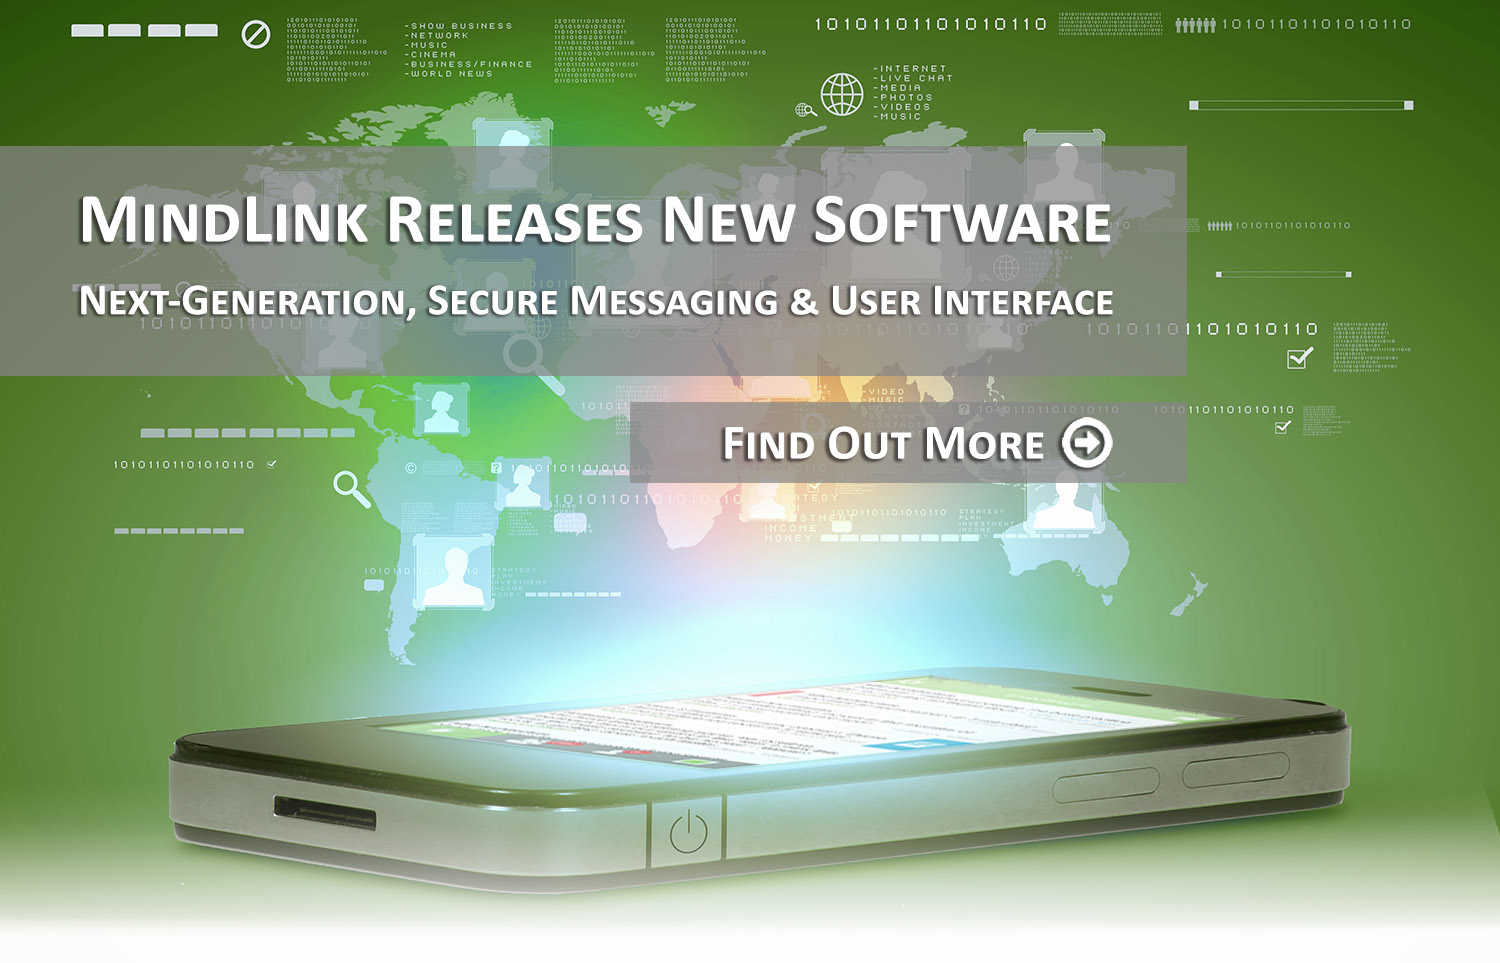 MindLink releases new software